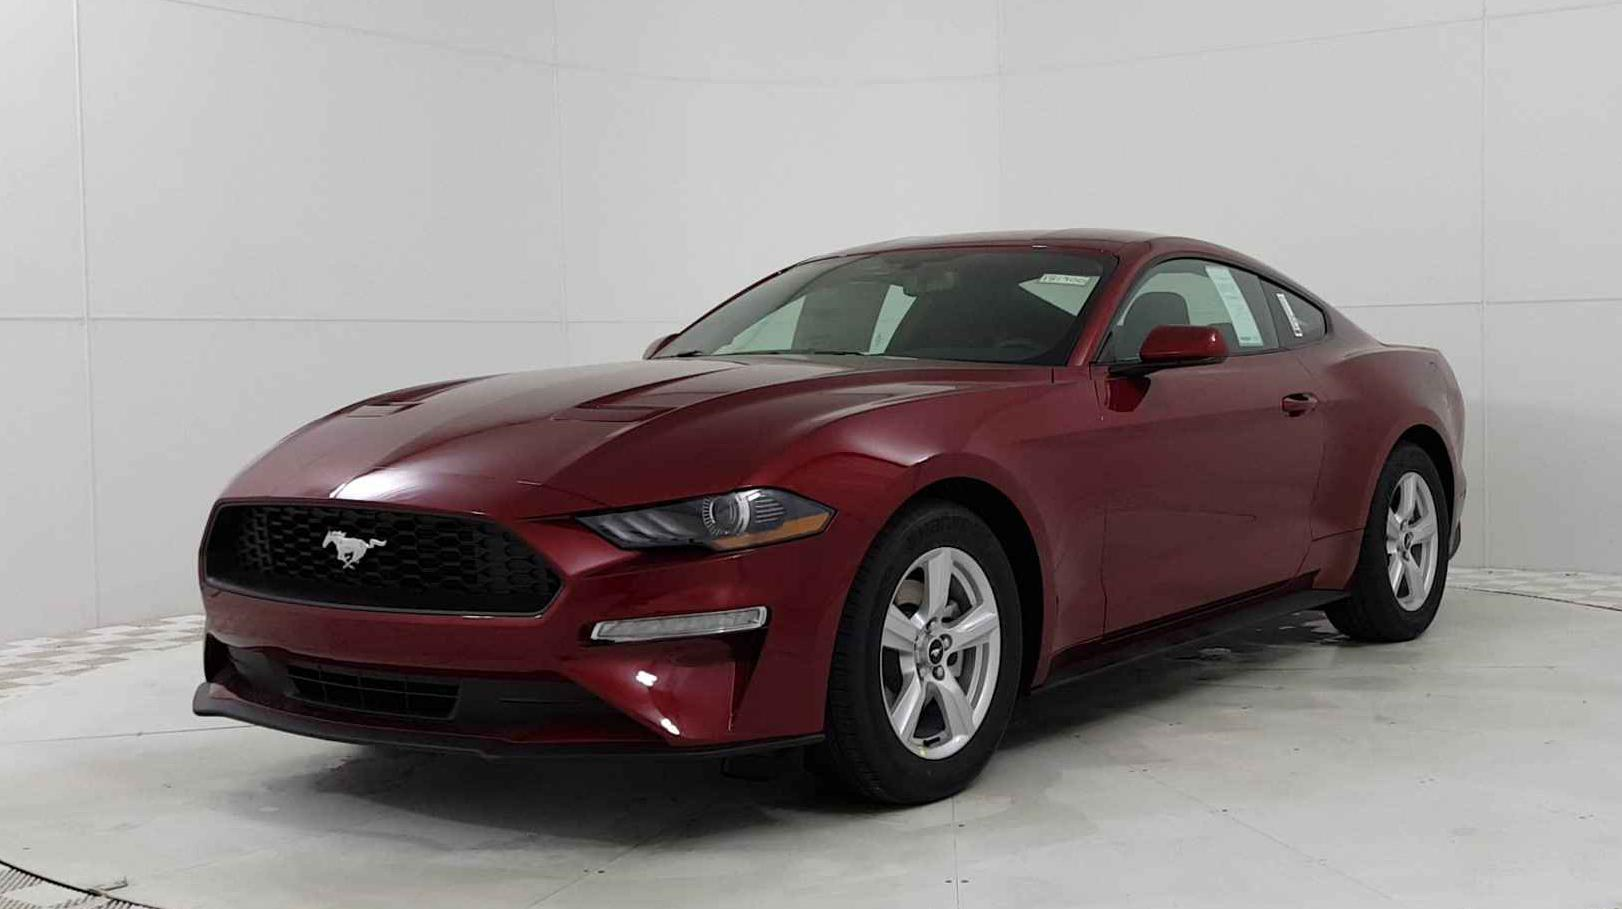 New Mustang For Sale In Niles Il Golf Mill Ford